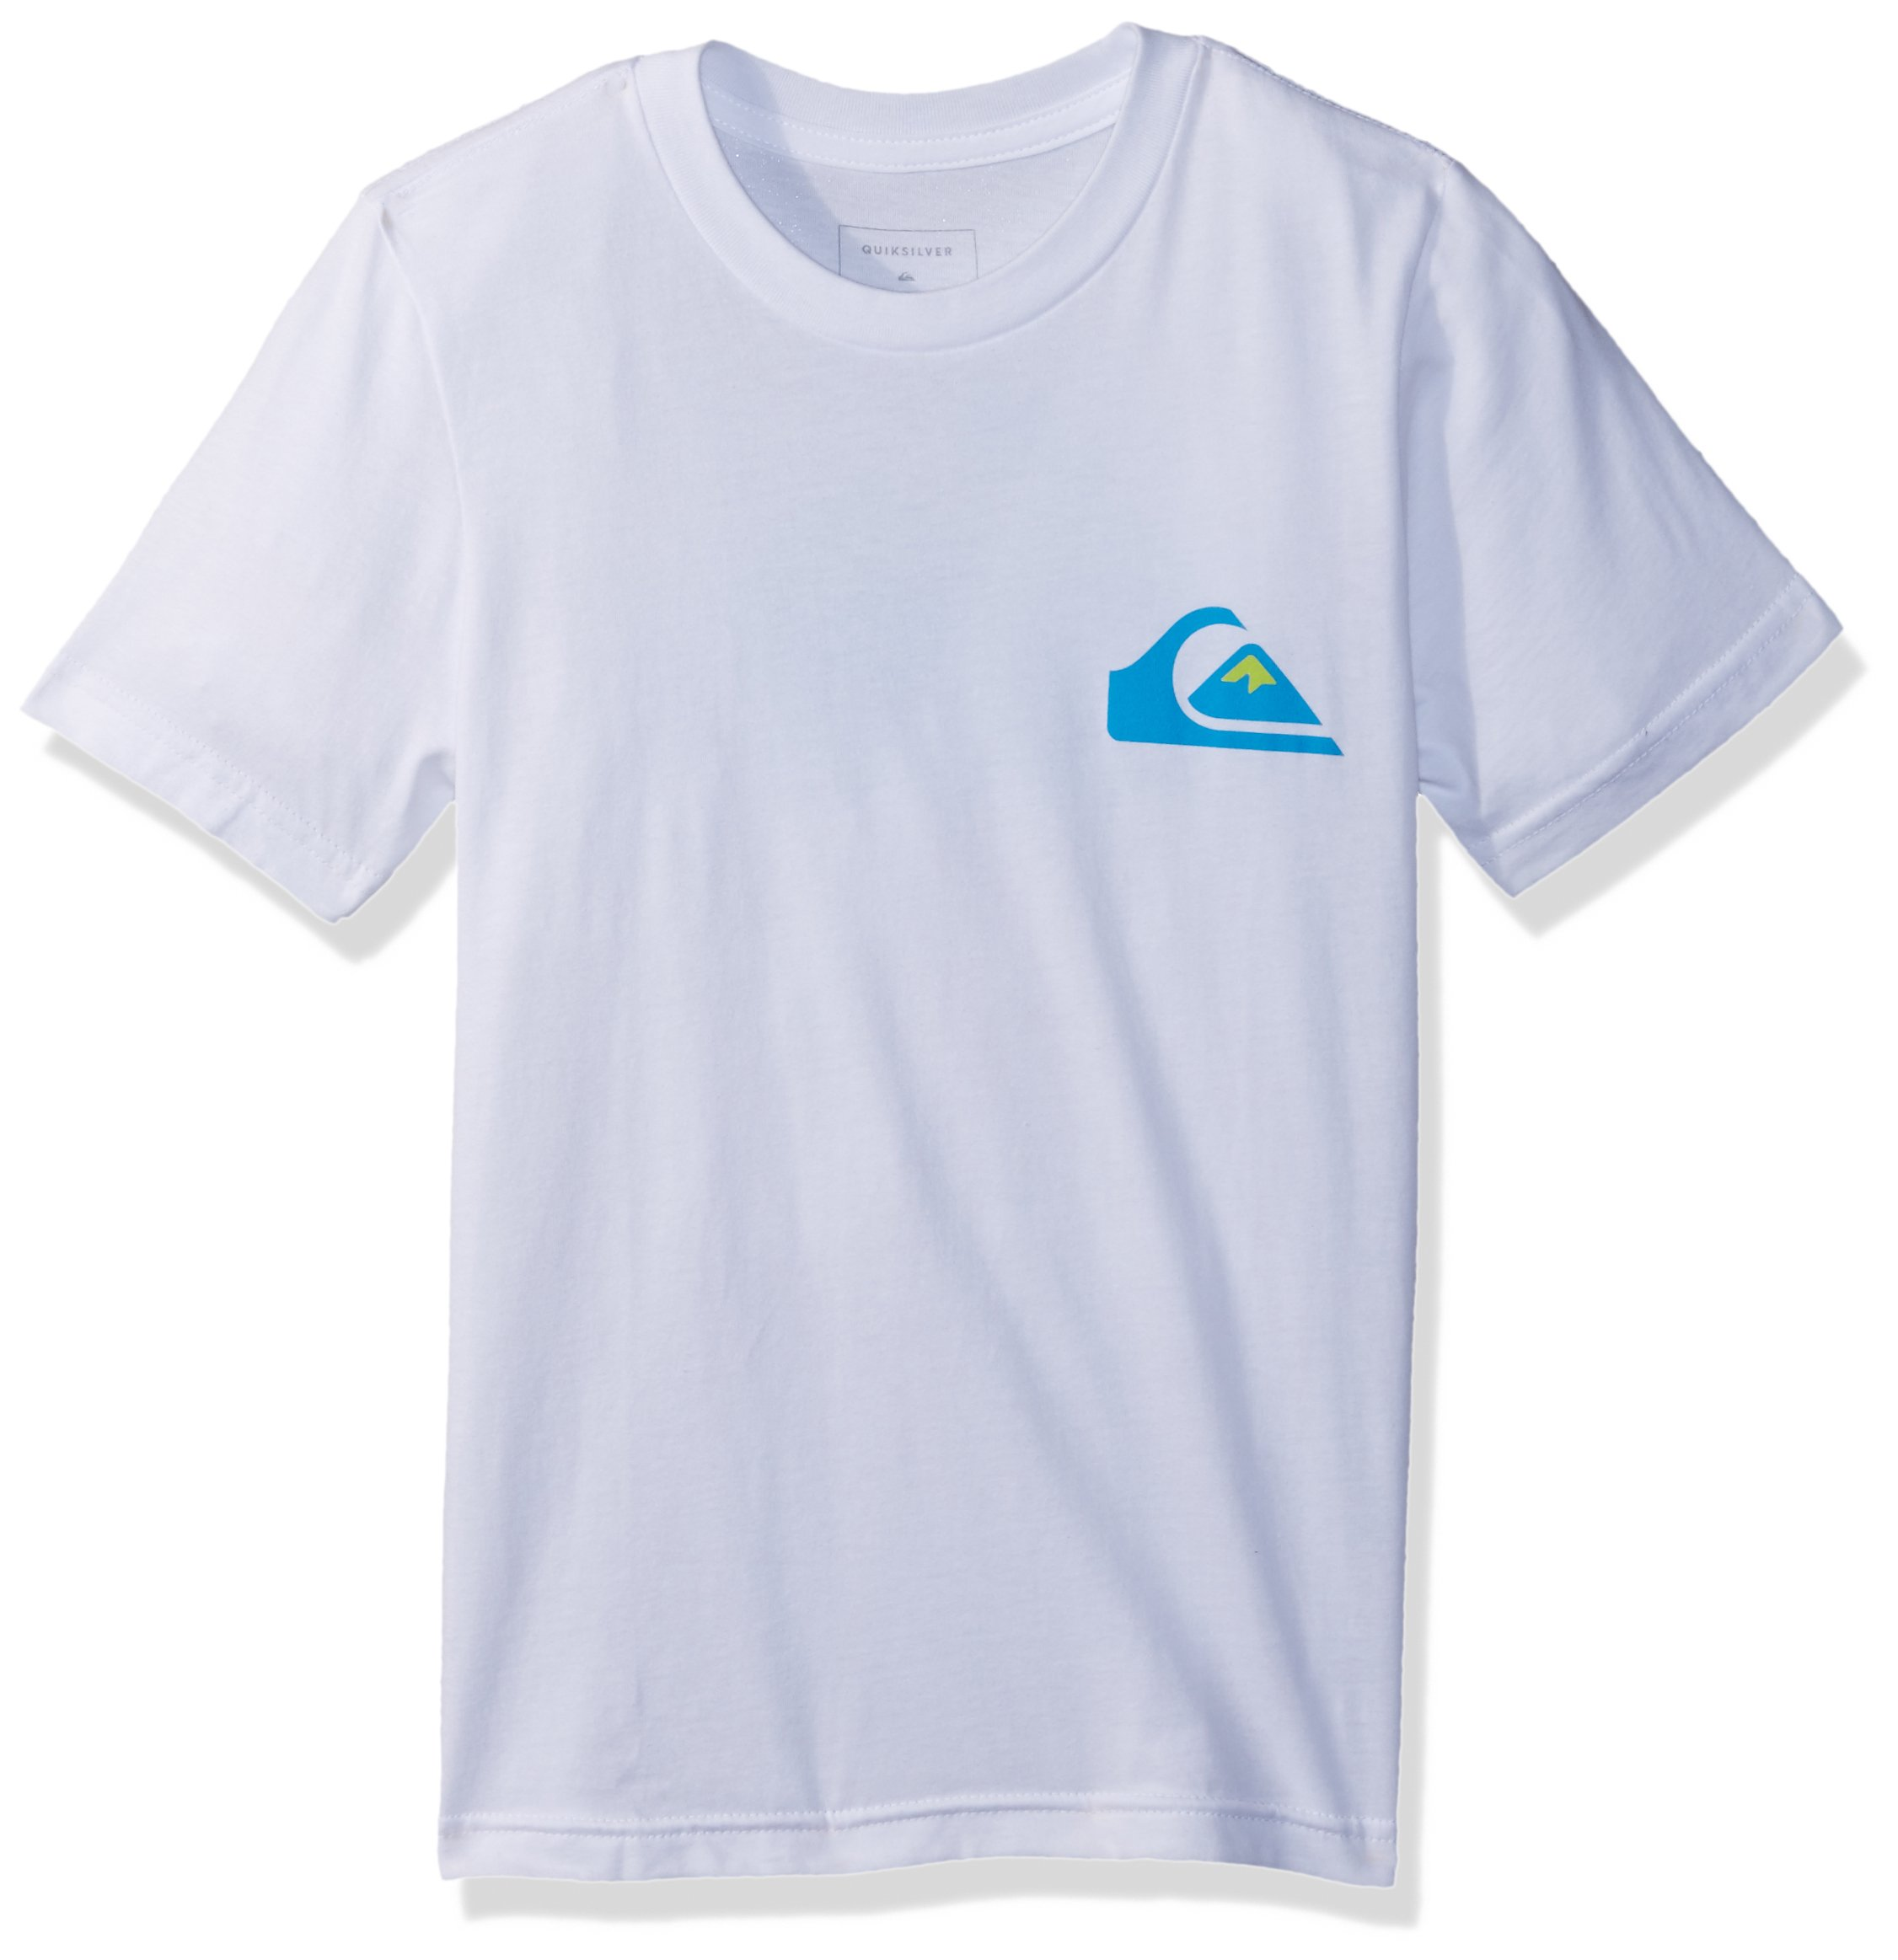 Quiksilver Big Boys' Vice Versa Youth Tee Shirt, White, L/14